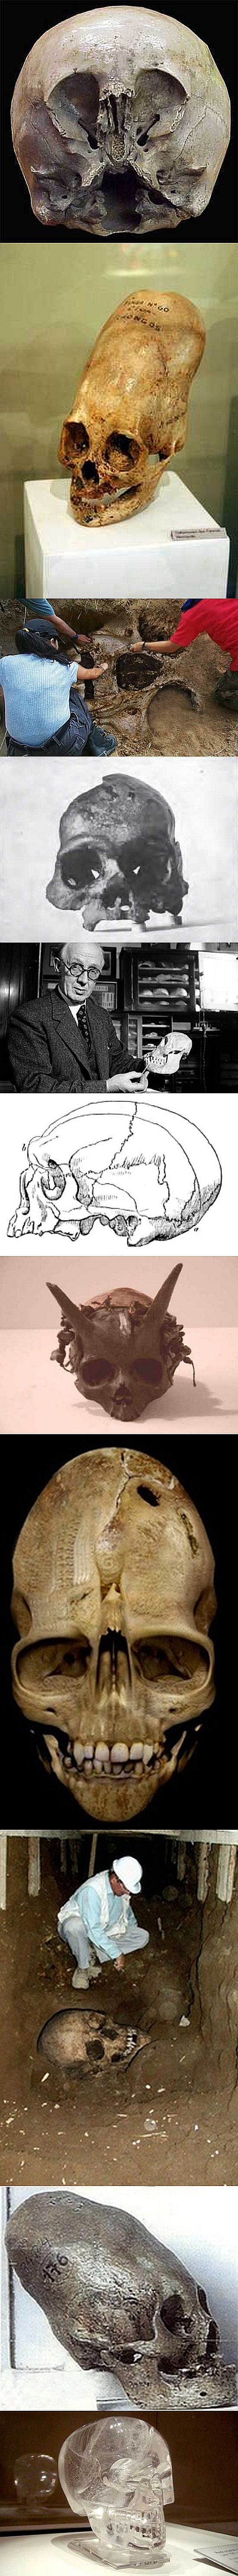 """Fake - Including Starchild, Crystal Skulls, Andover Vampire, Horned Skulls, Misshapen(elongated) Skulls, Piltdown Man, Calveras Skull, Batavus Genuinus, Giant Skulls and variations of the above. - There is no proof of any and many have been """"proved false"""". Others are unverifyable and claims are unproven and based on hearsay and tricks of photography. Many have mysteriously disappeared or the owners don't allow testing. A link is included to discussion of many of the fakes......"""